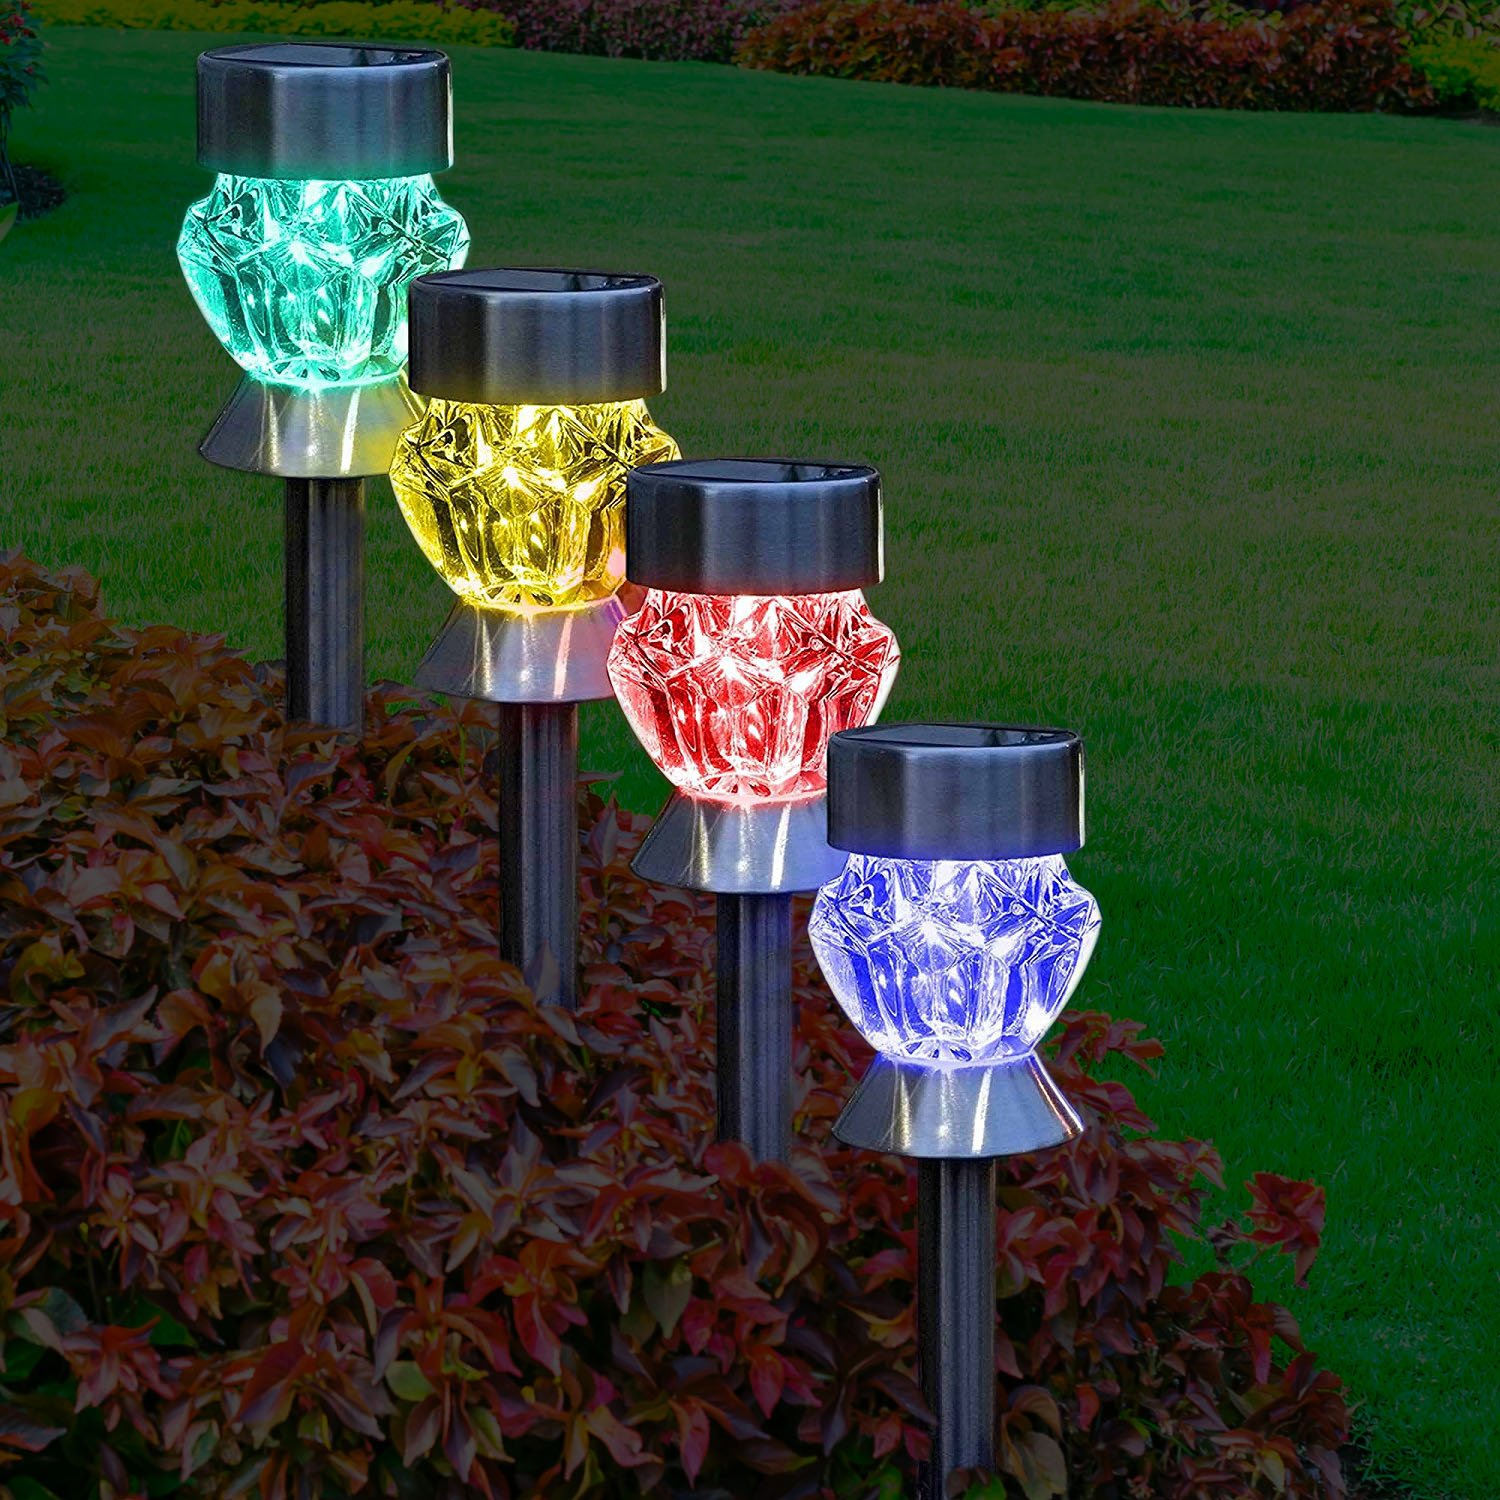 Solar Outdoor Lights 4 Color Changing Led Lamps For Landscape Lighting Ideal For Garden